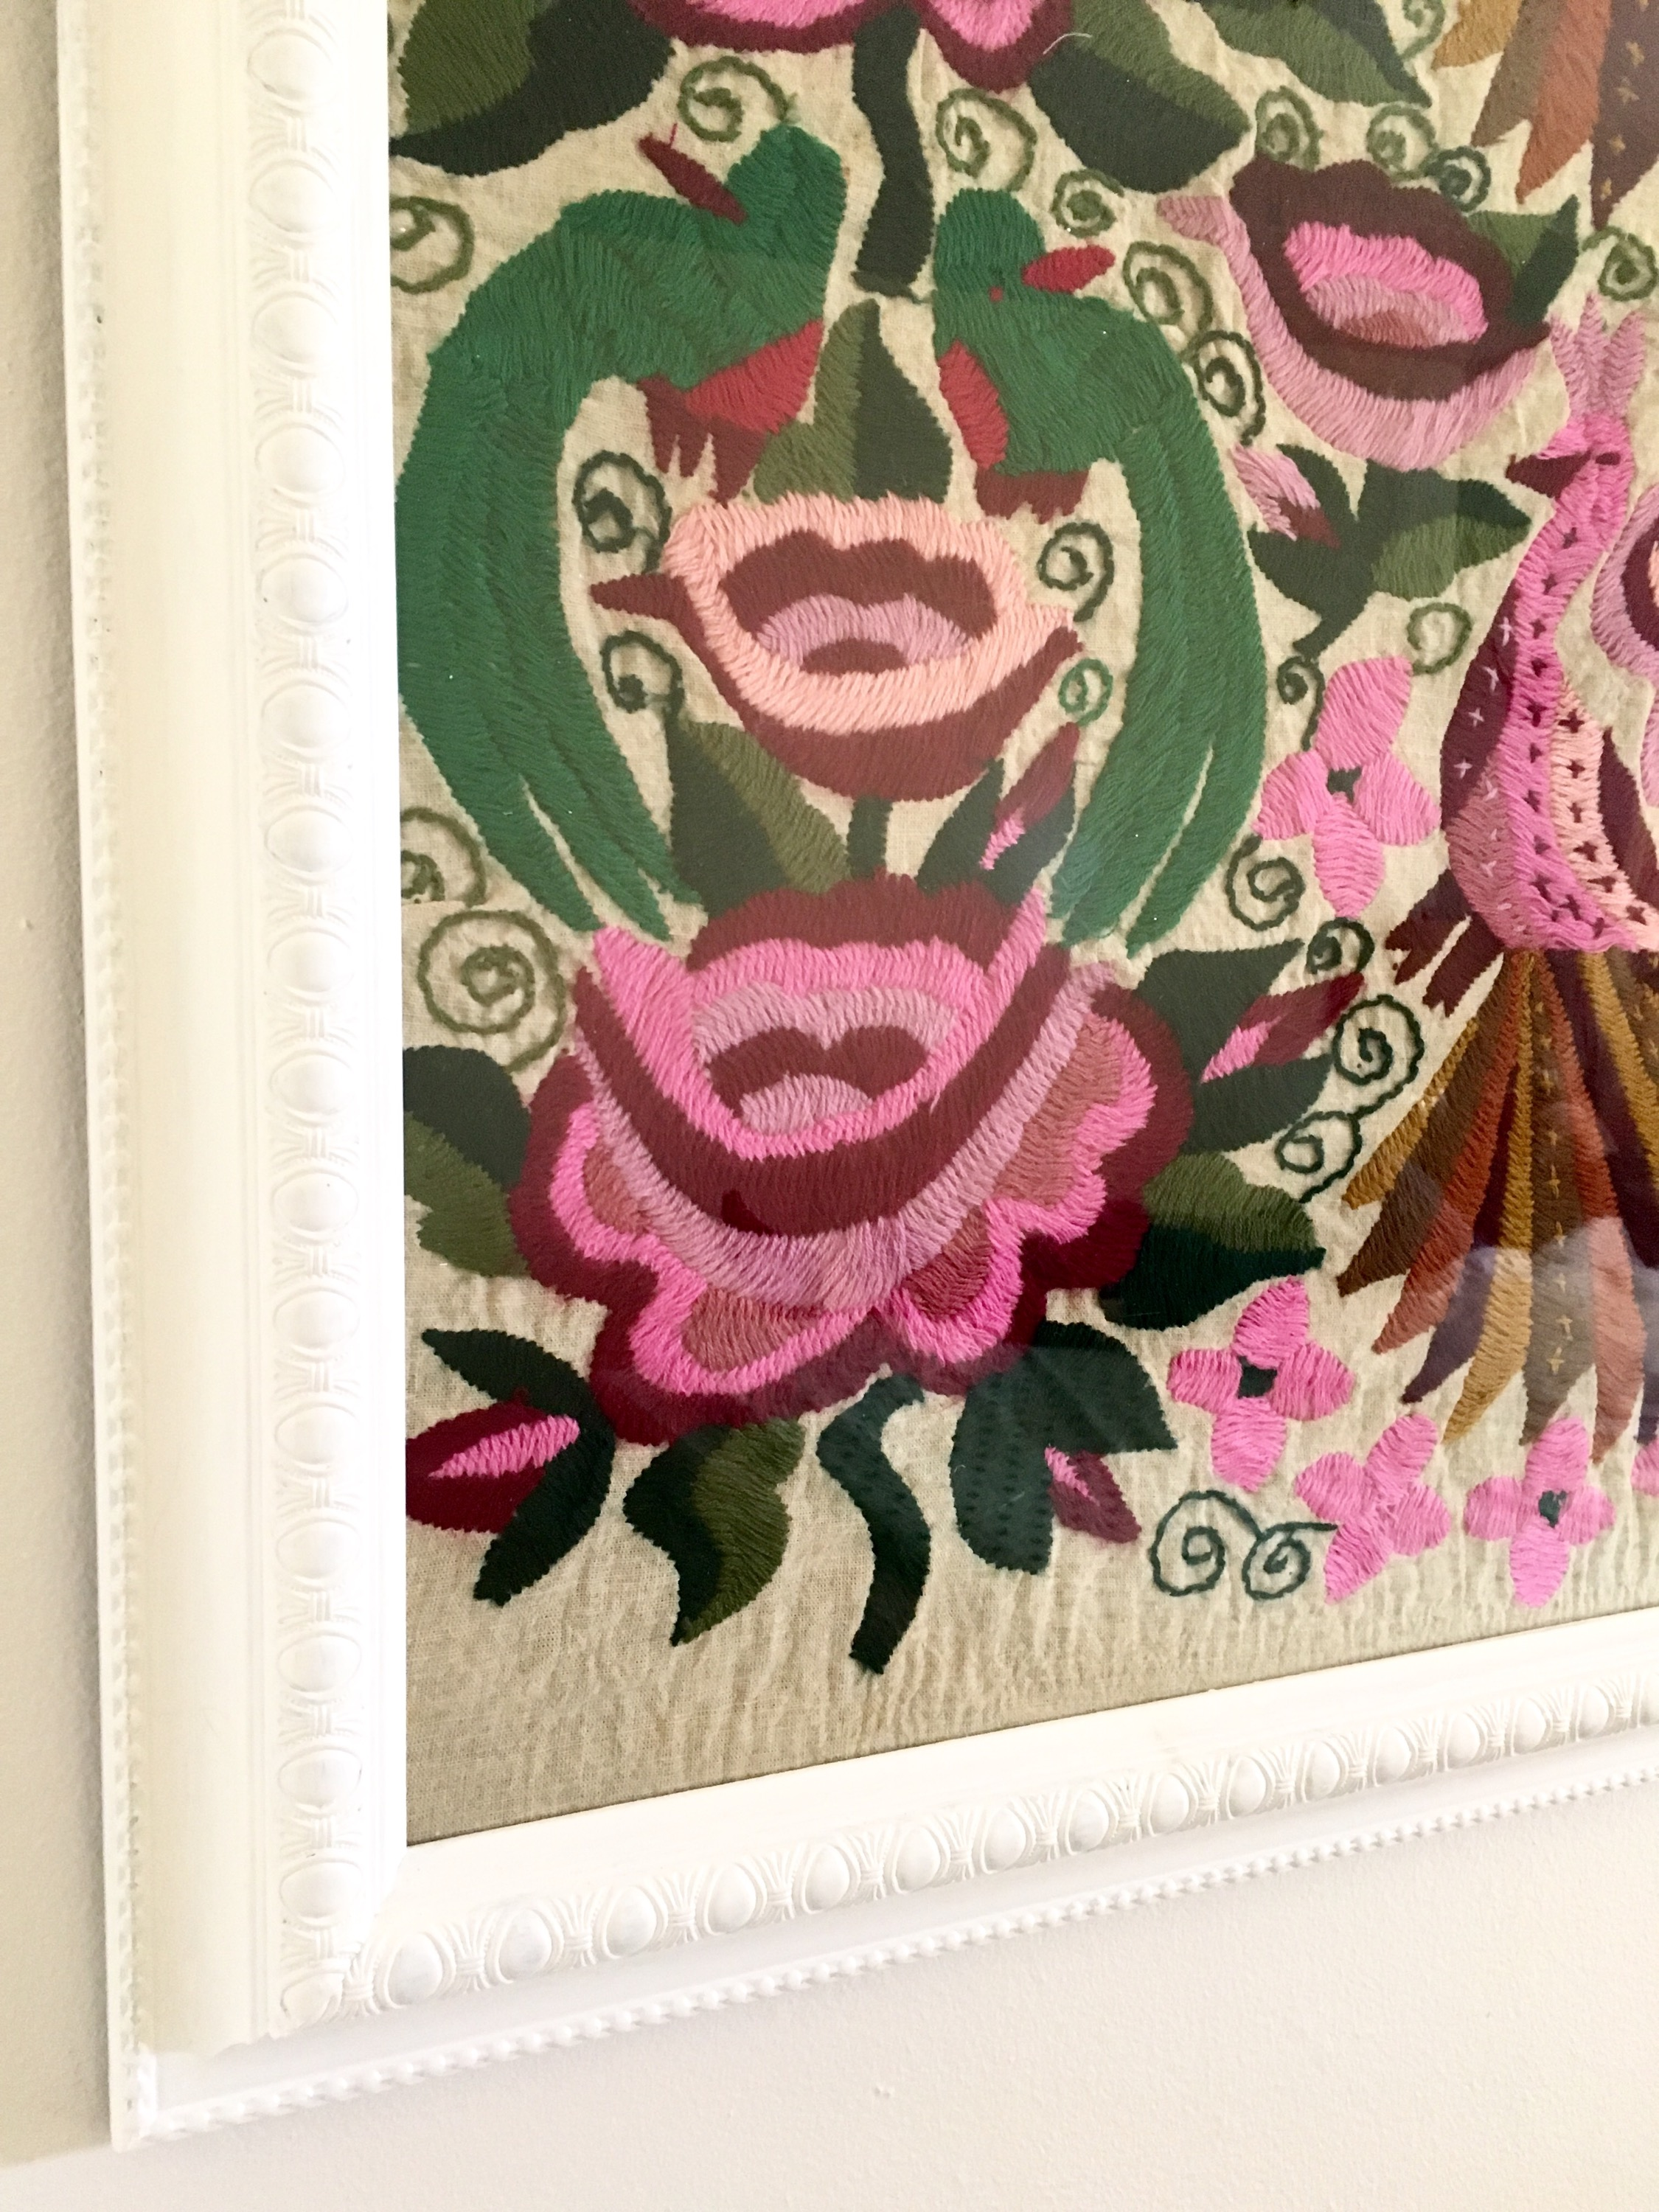 DIY: Framed Needle Point